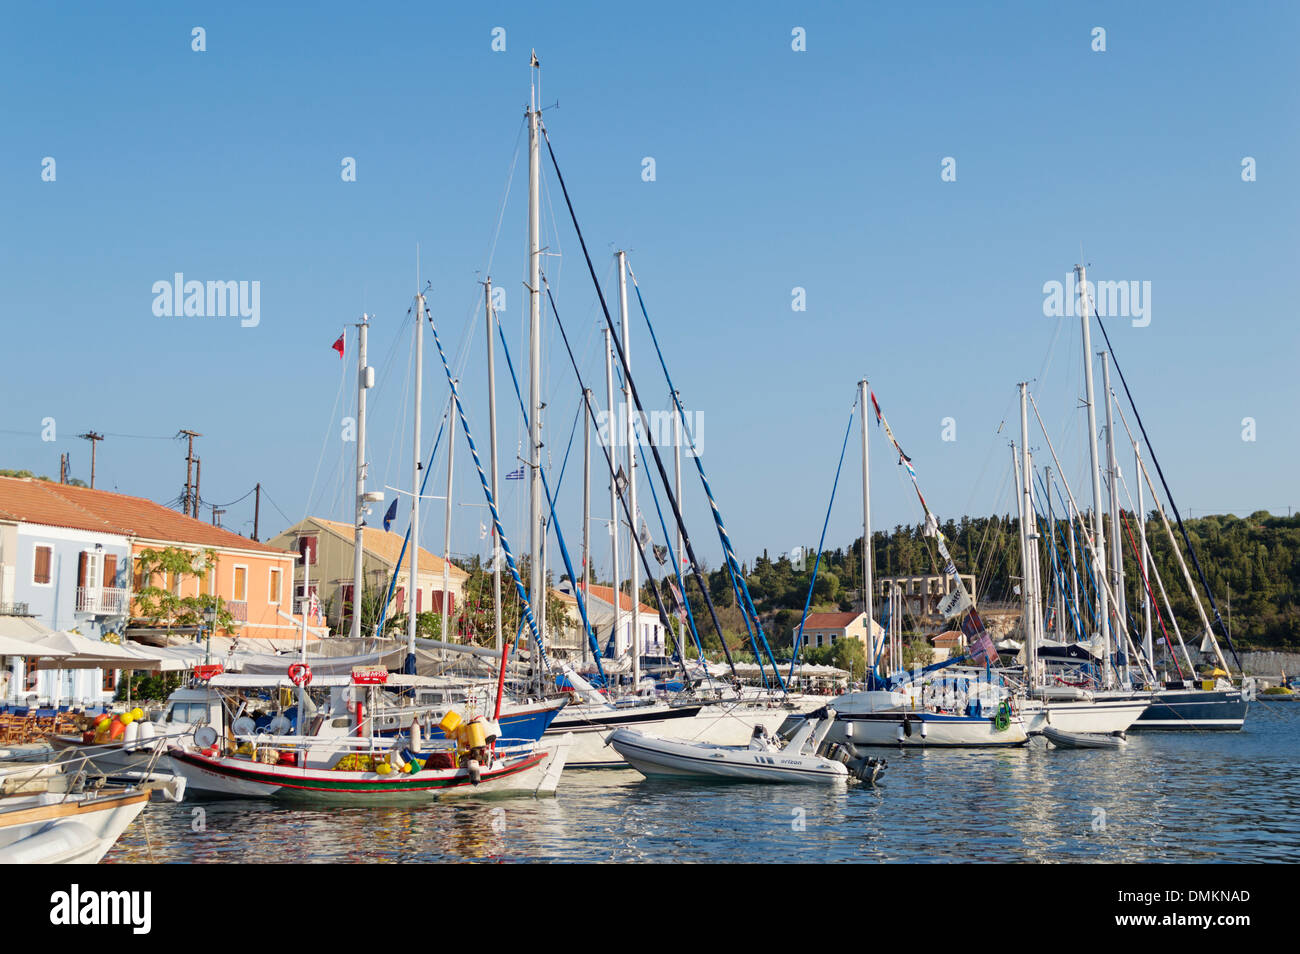 Kefalonia Greece: sailing yachts in the harbour at Fiskardo - a fishing village in the north of the island - Stock Image